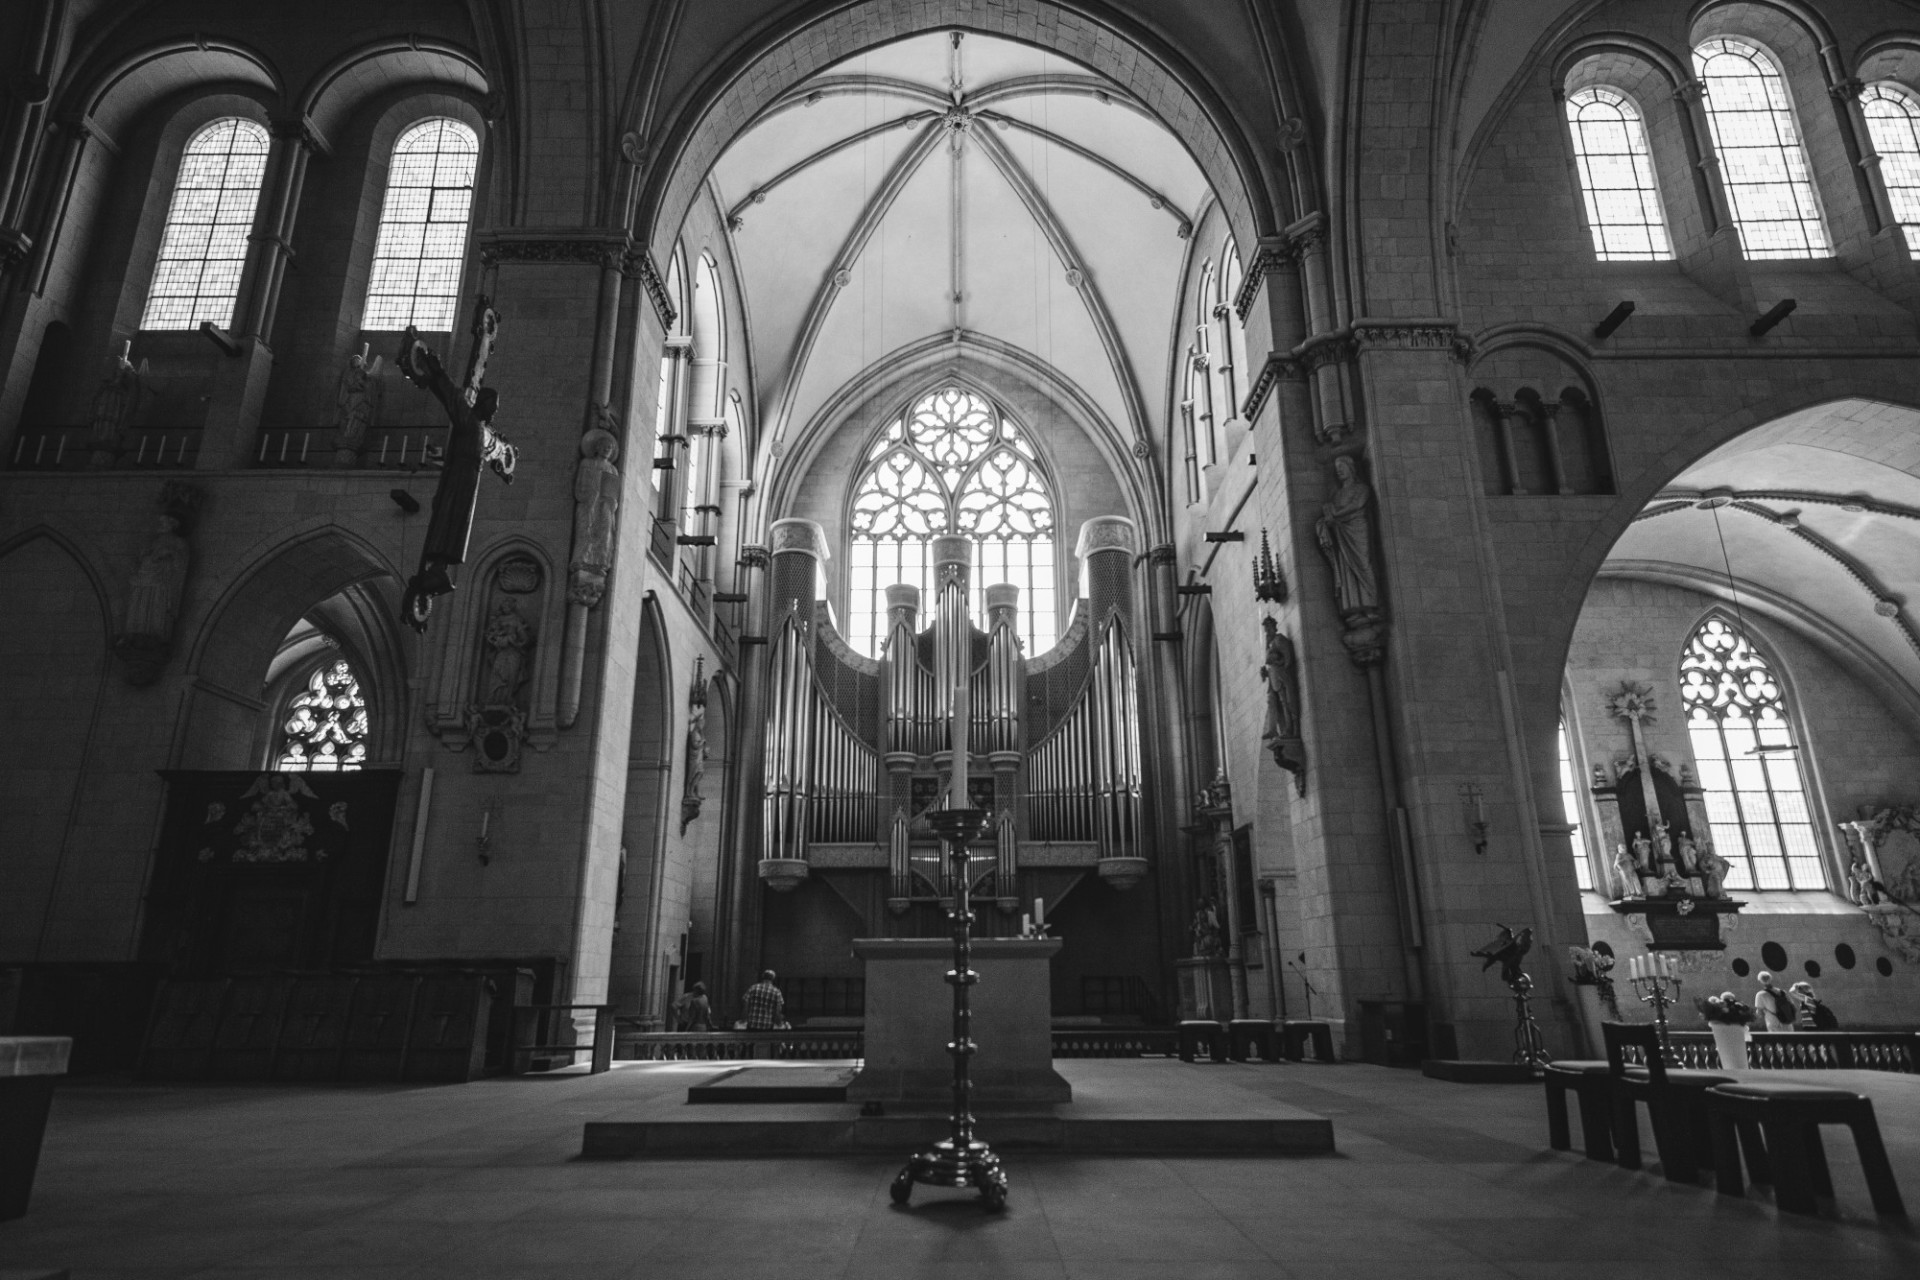 View of the church organ from the cathedral in Münster